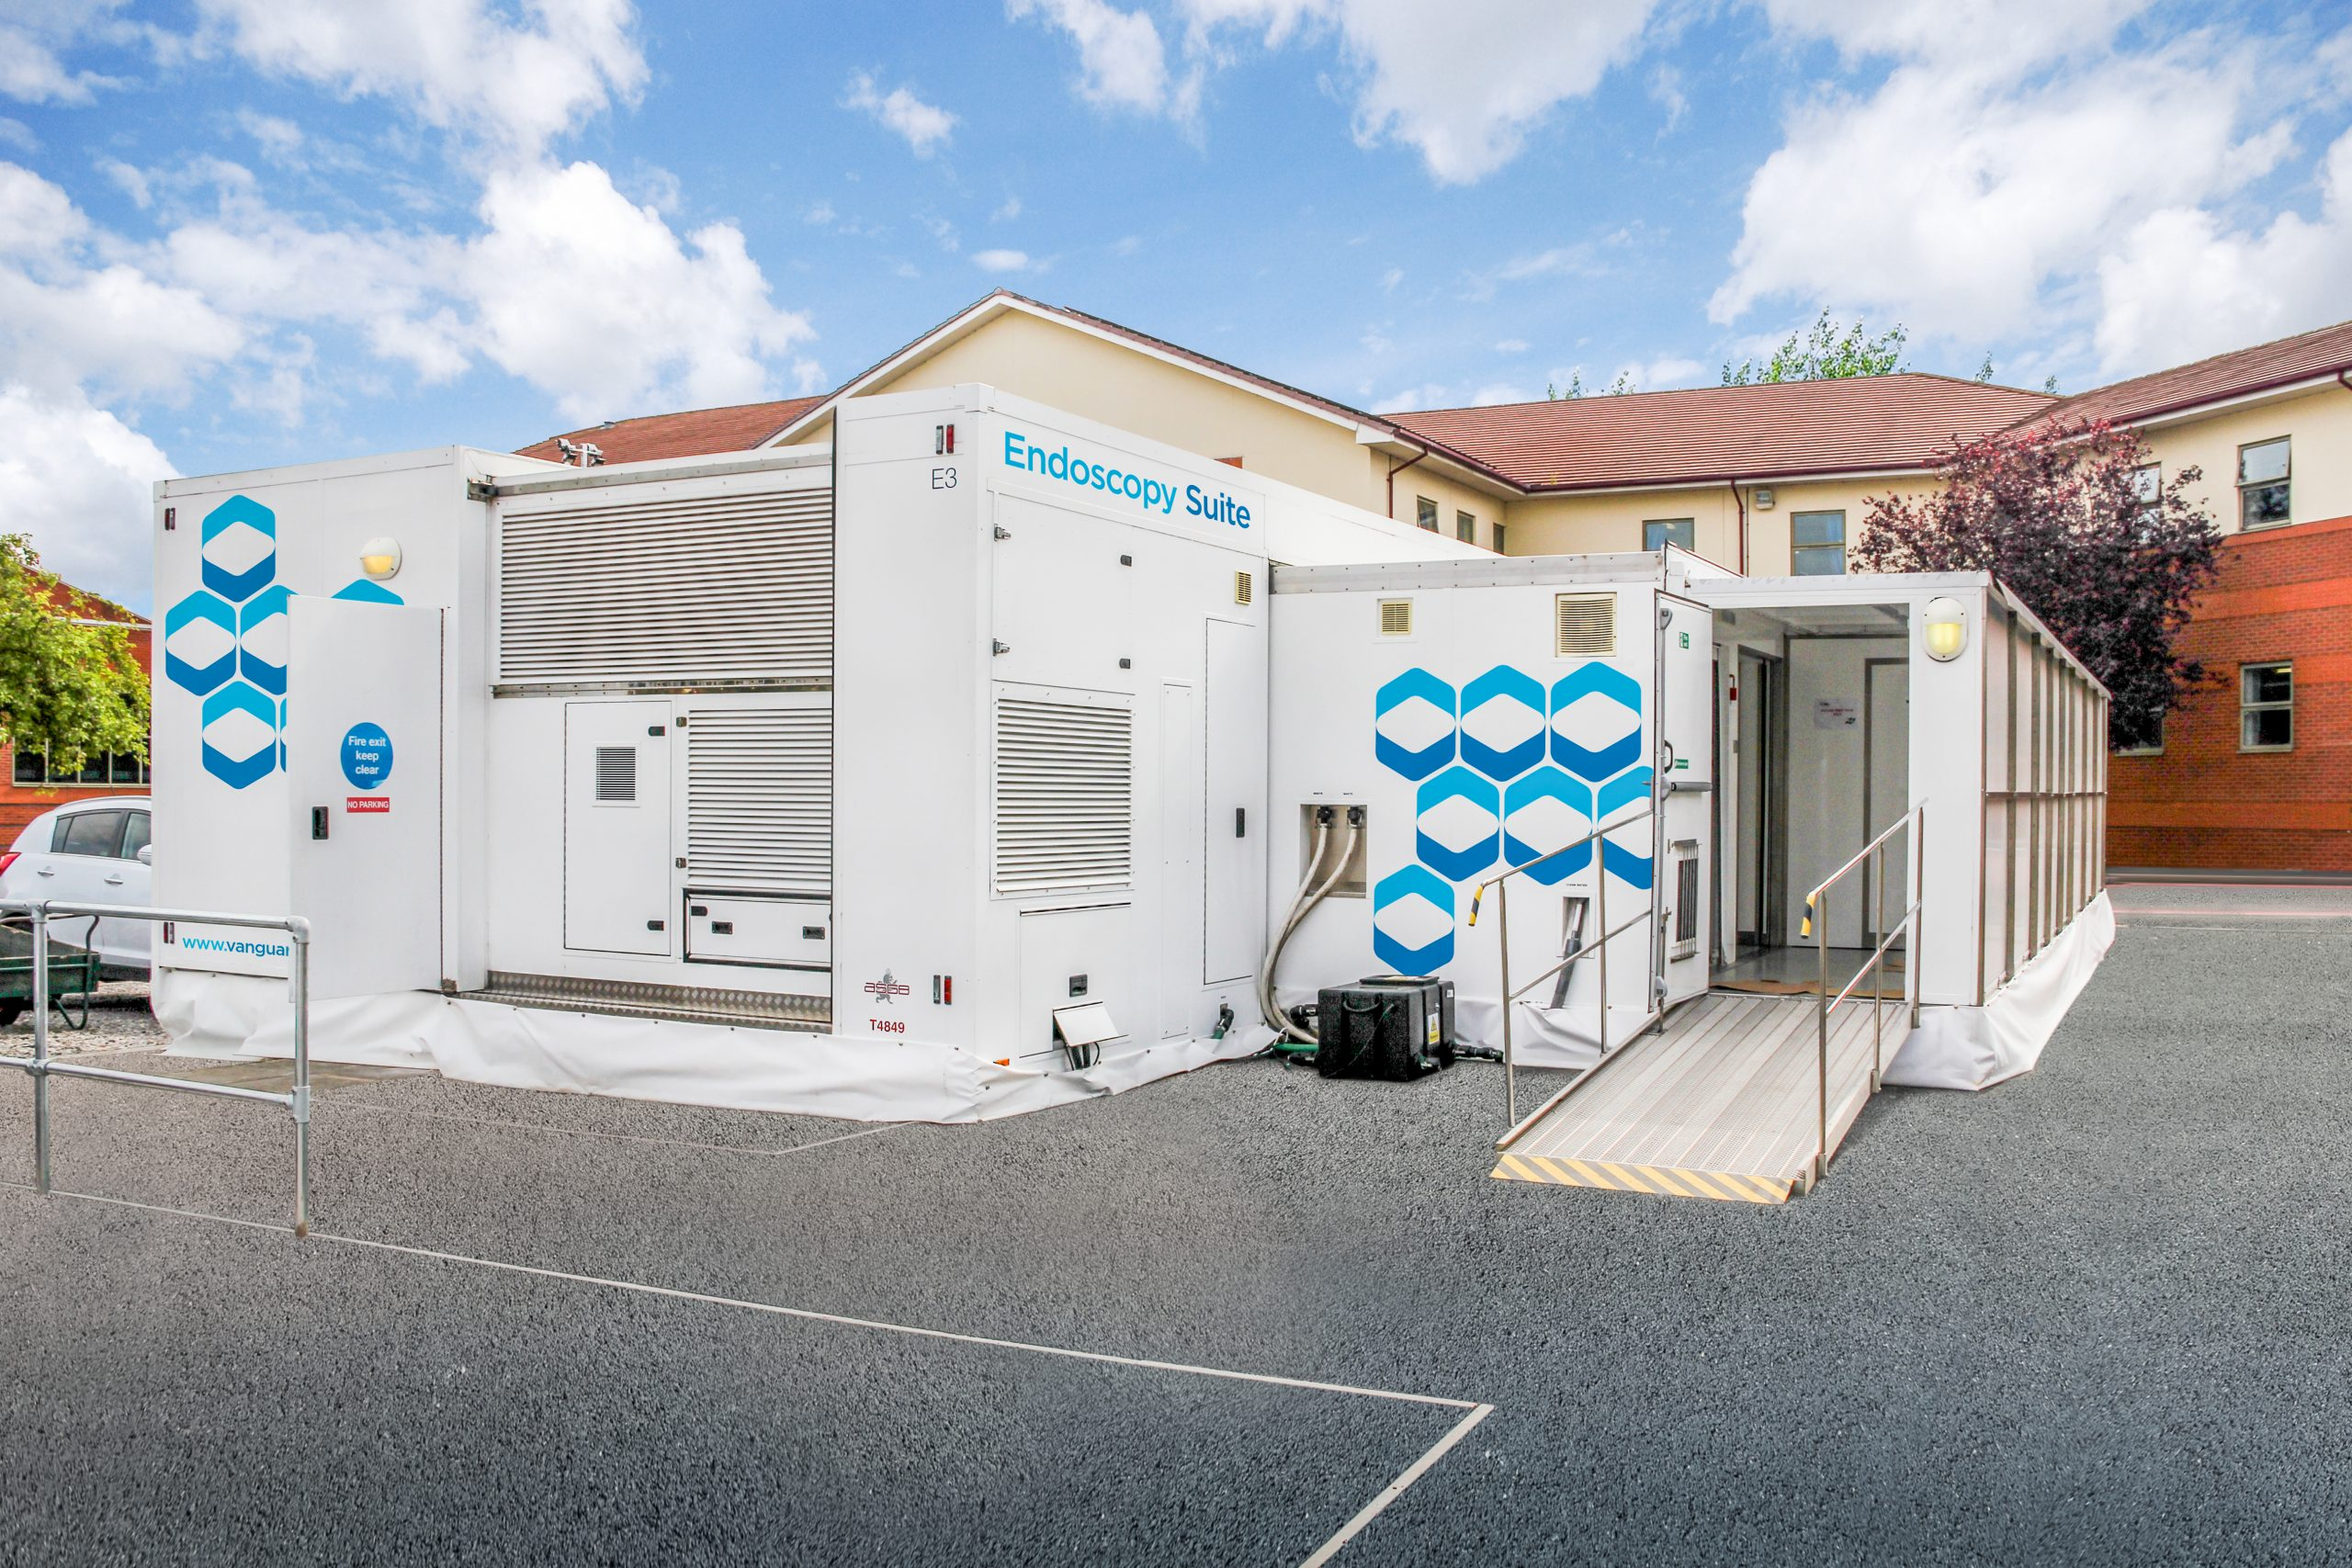 Vanguard endoscopy suite purified water solutions